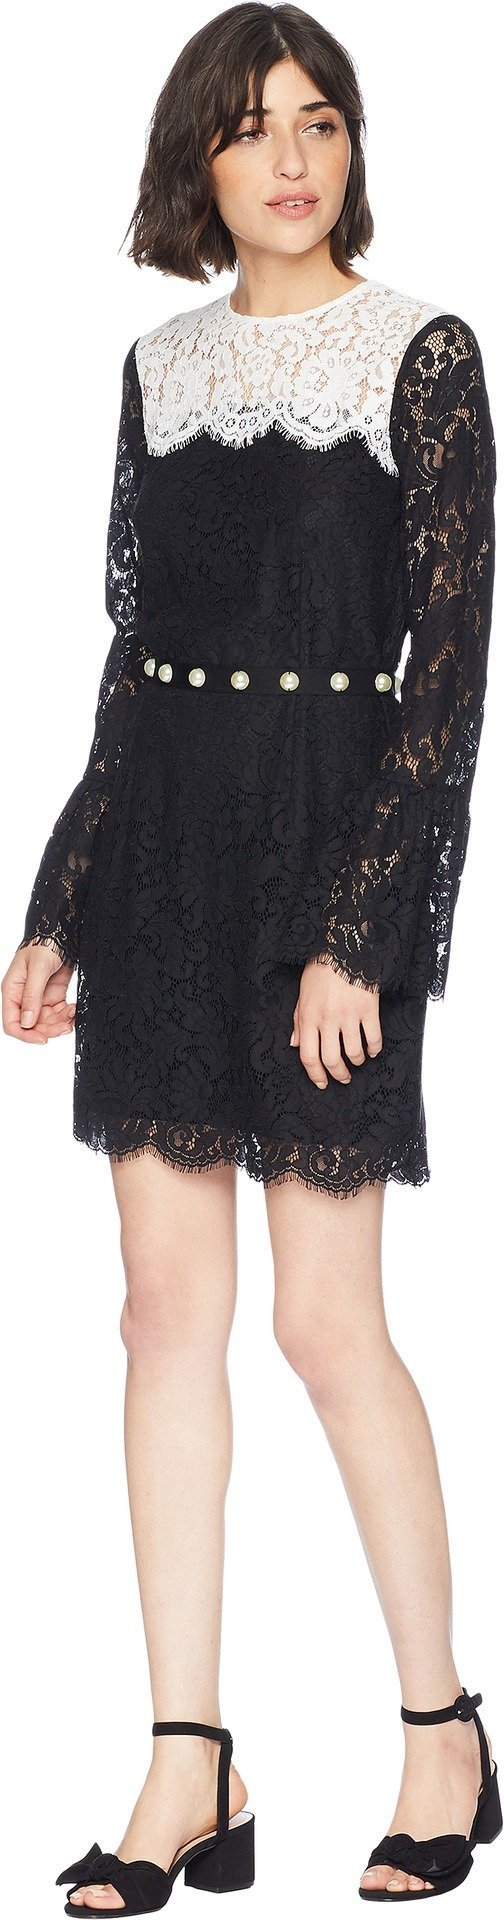 Juicy Couture Women's Color Block Lace Bell Sleeve Dress Pitch Black Angel 0